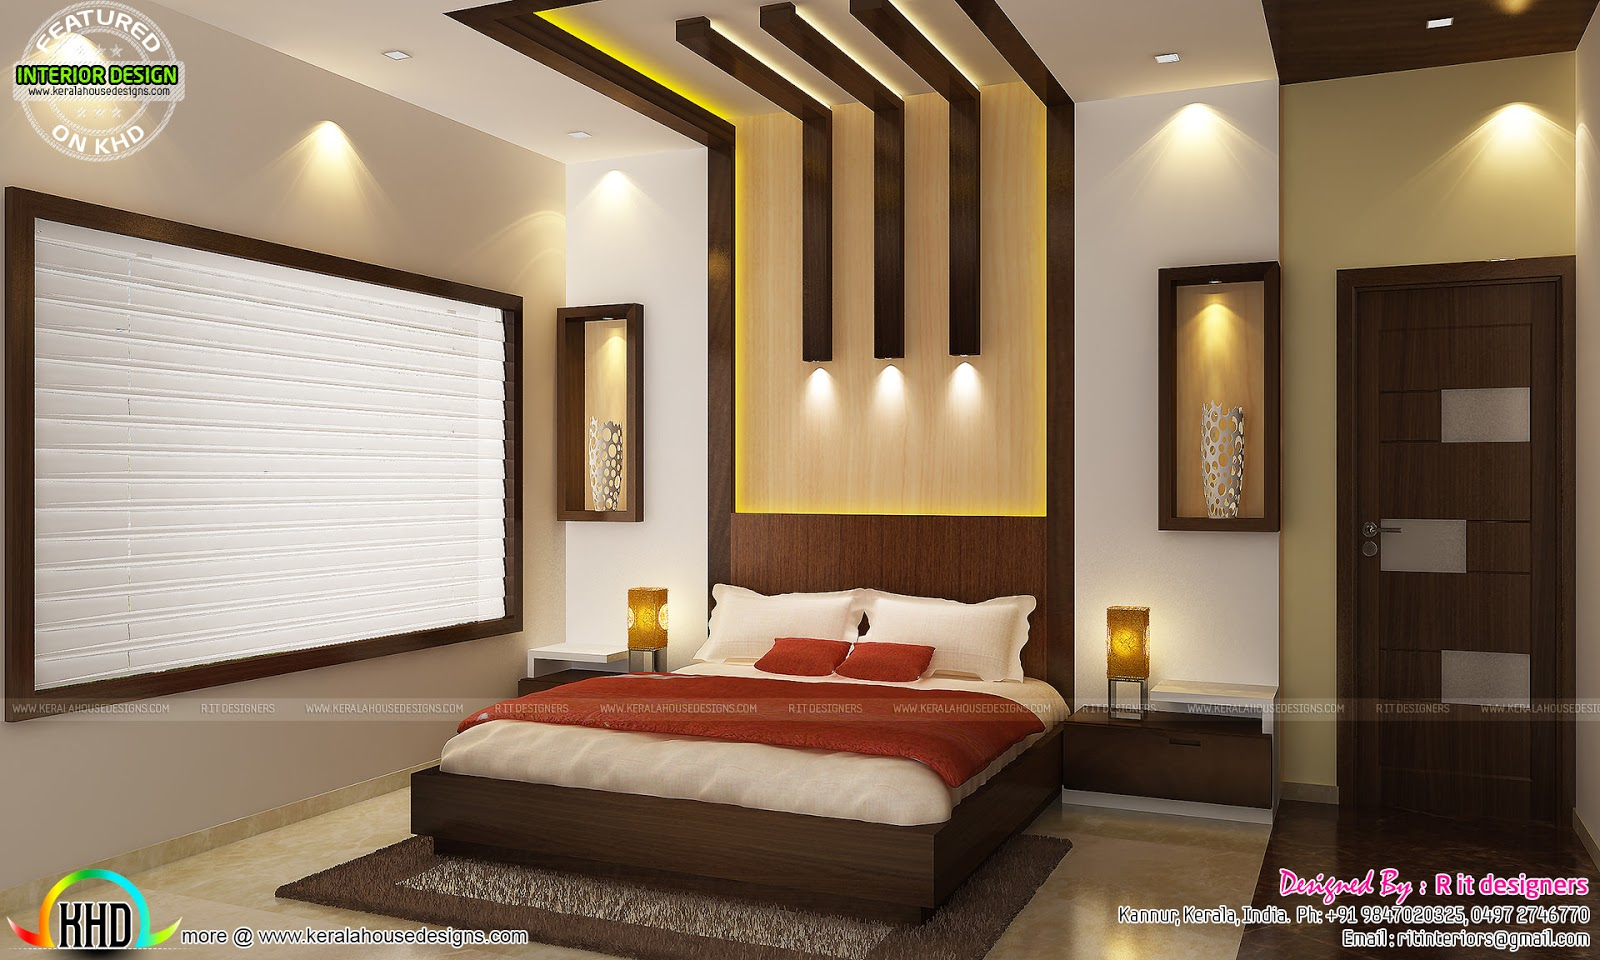 Kitchen living bedroom dining interior decor kerala for Bedroom interior design